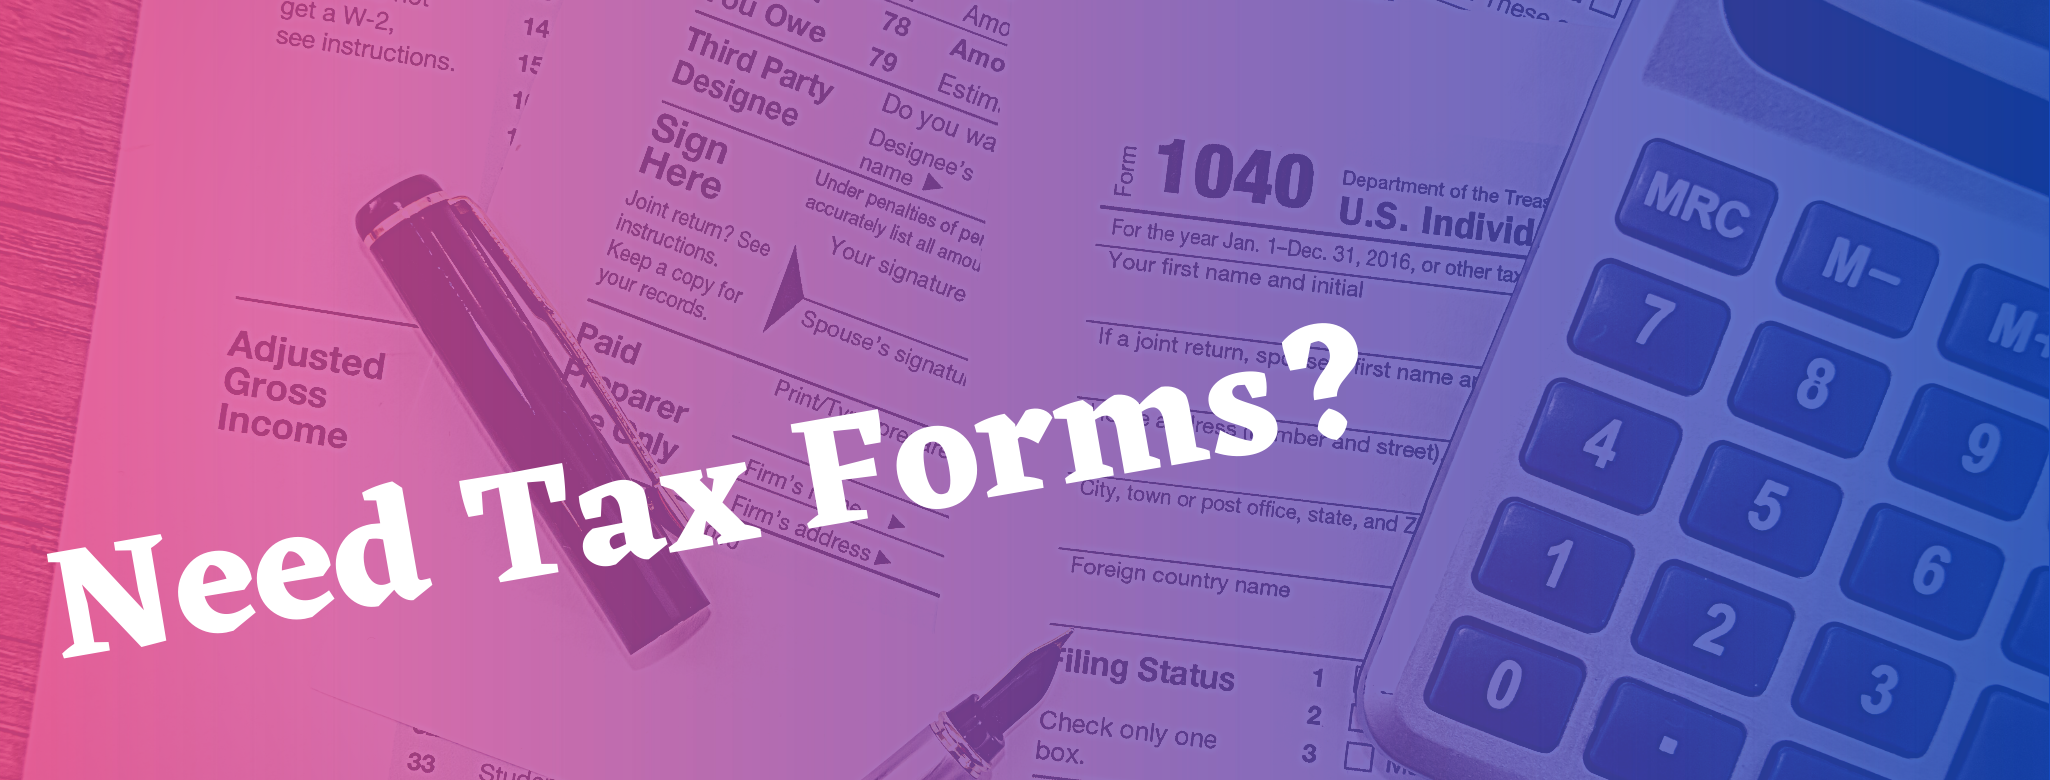 Image of tax forms, a pen and calculator